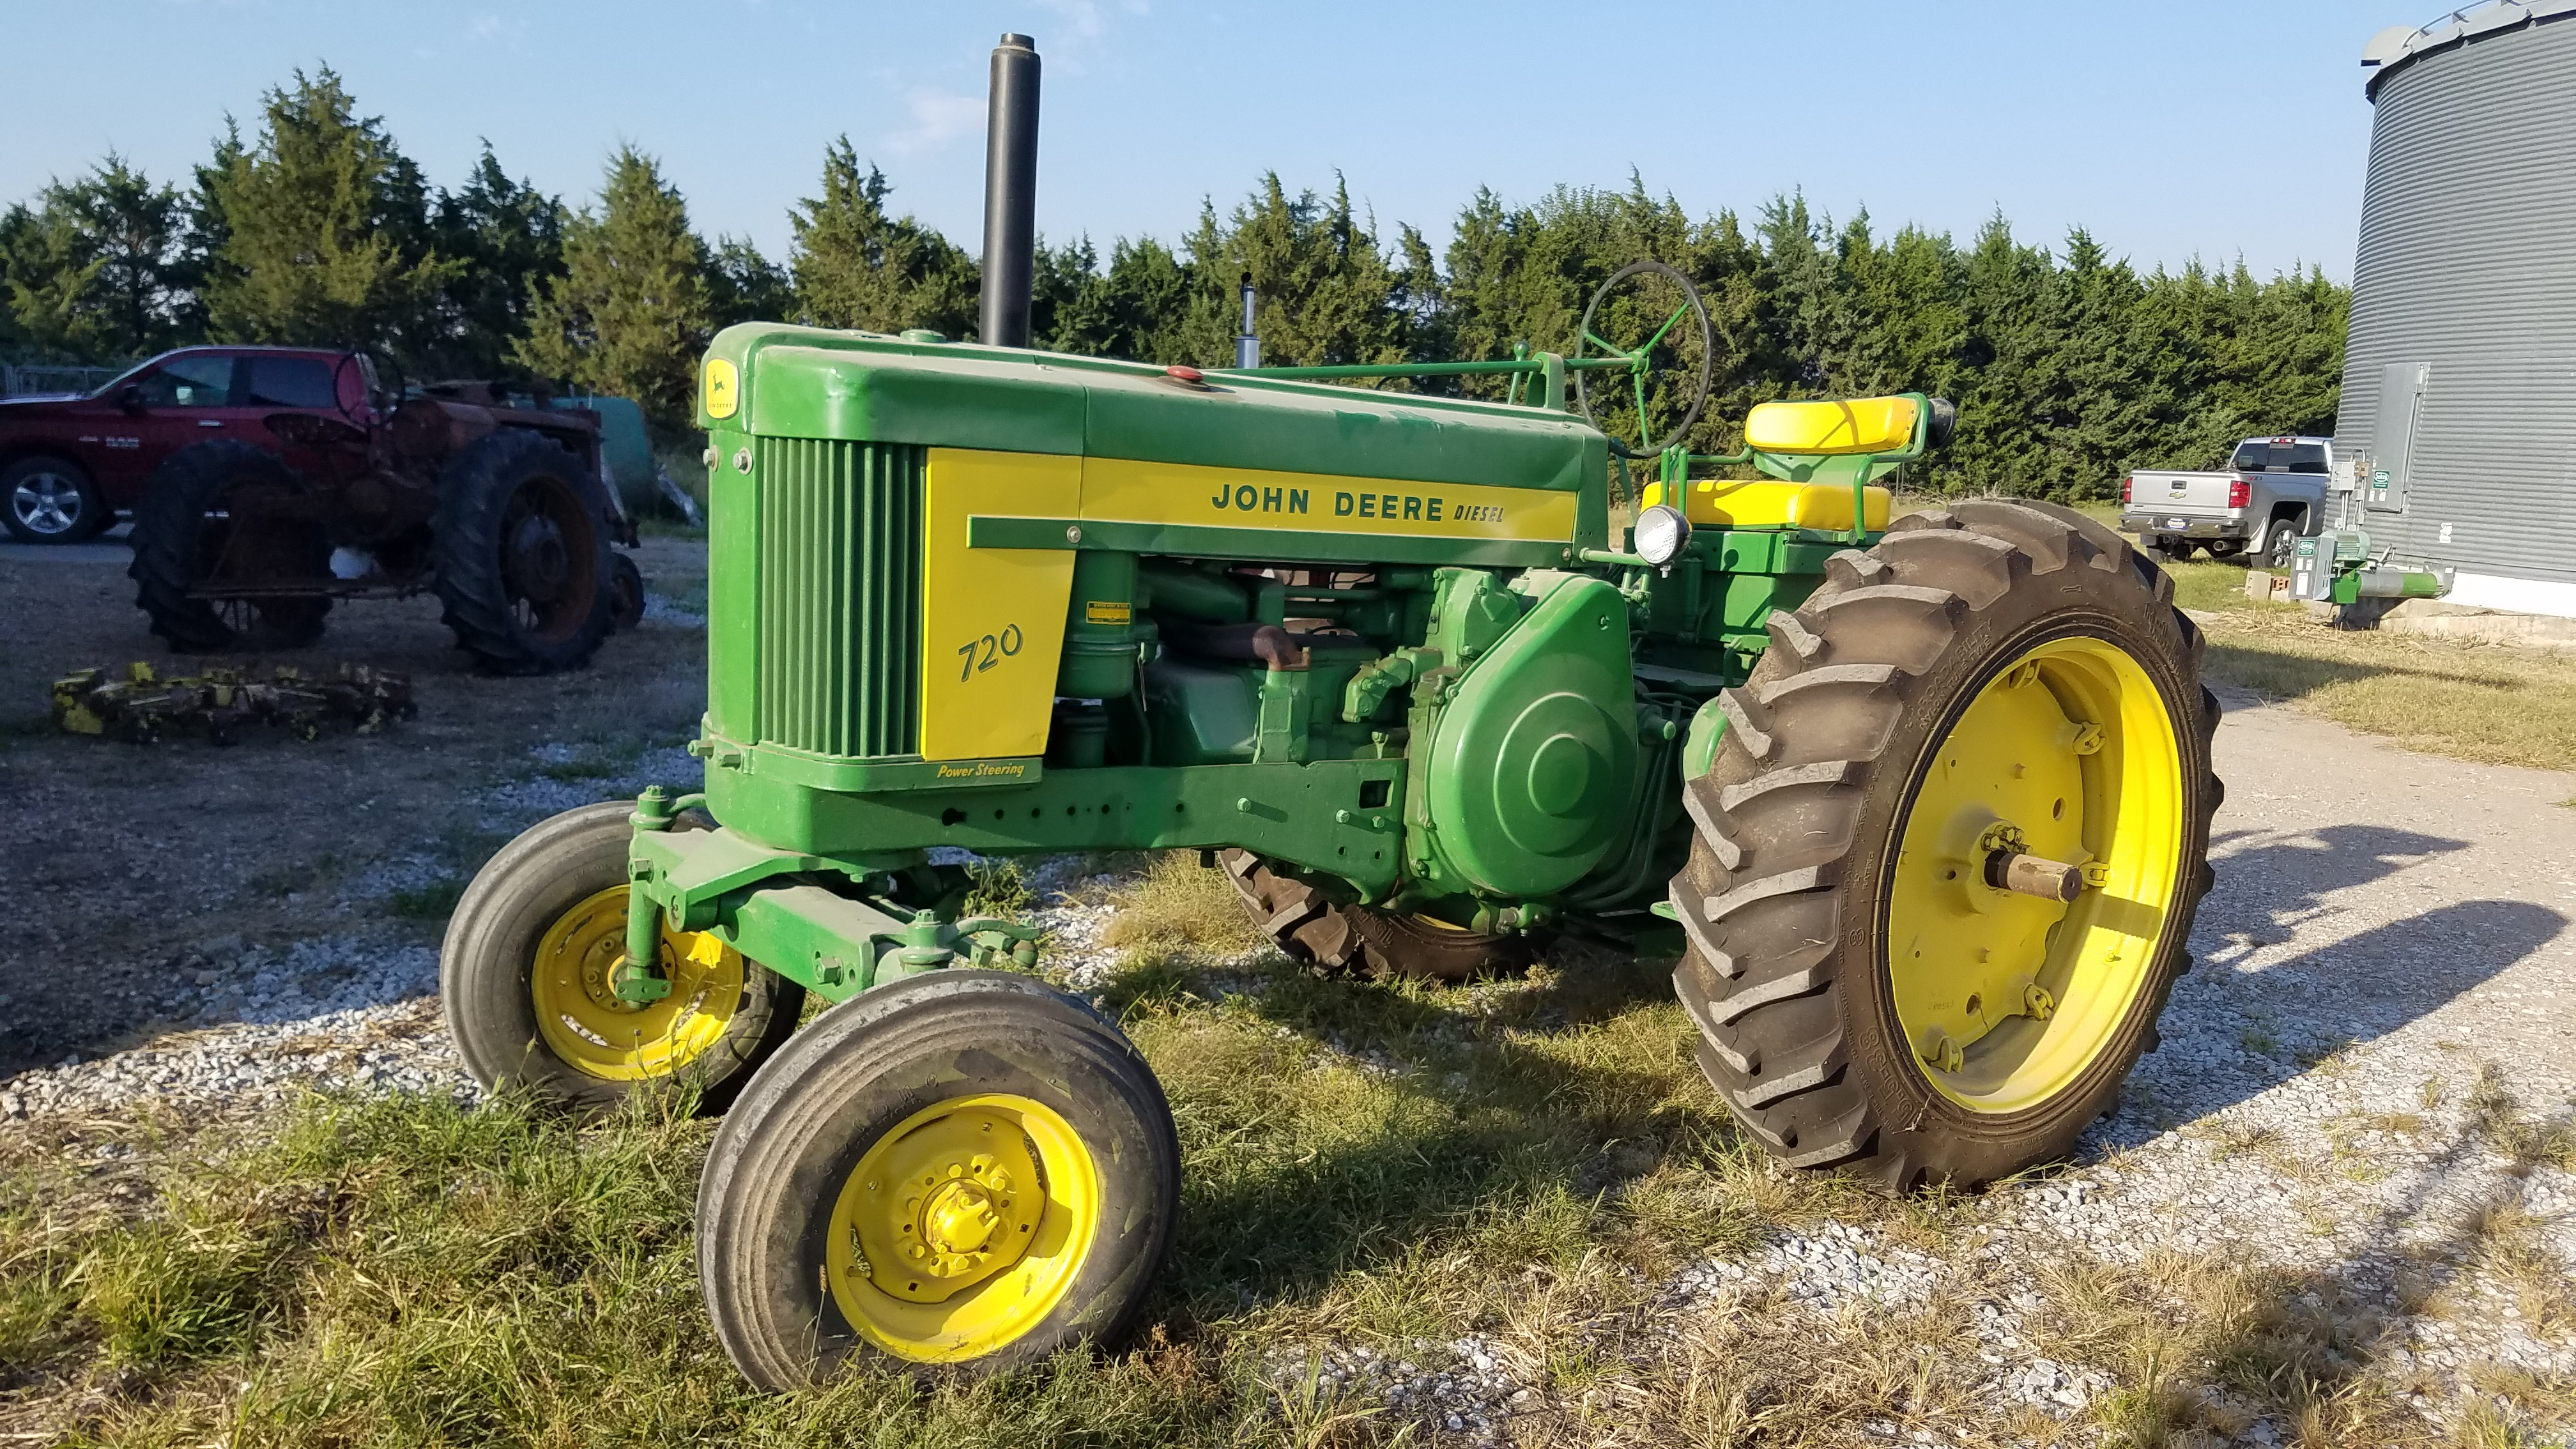 1957 John Deere 720 diesel for sale